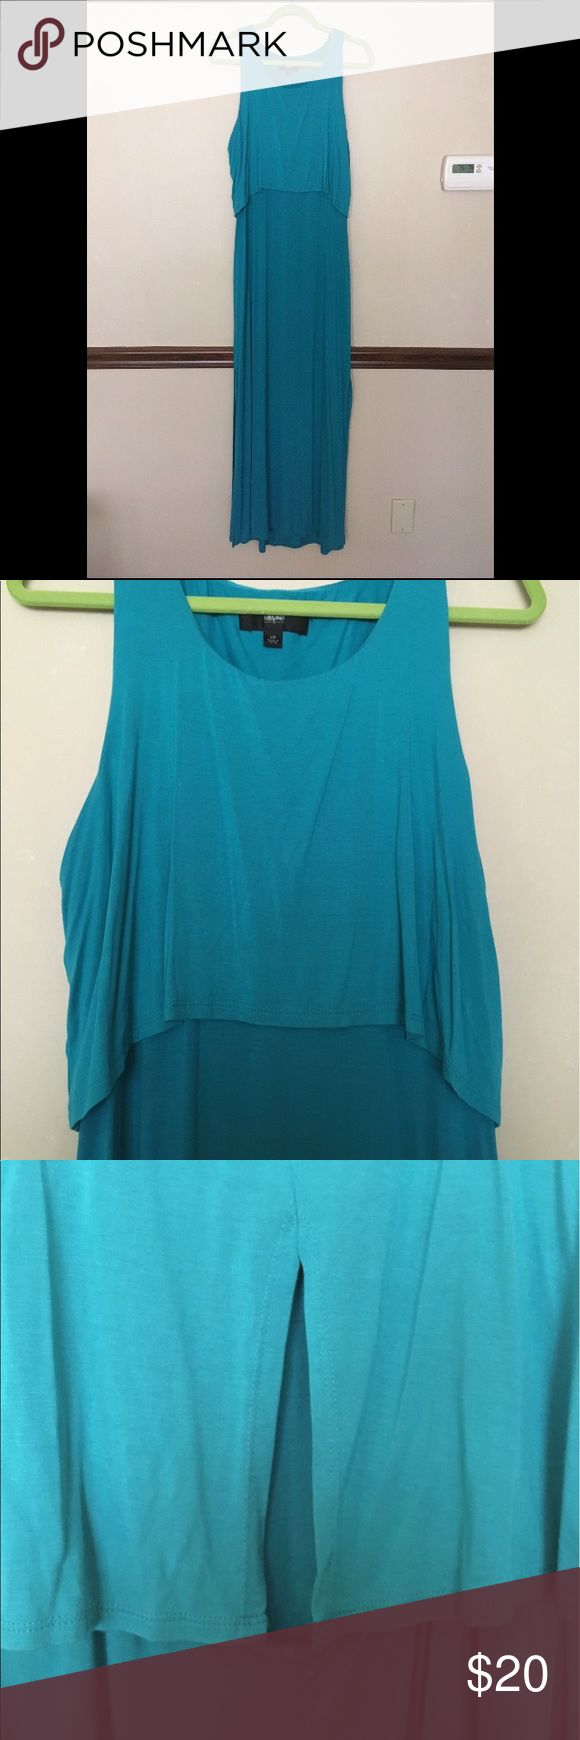 Teal Blue Maxi Dress with Keyhole Cutout Teal blue maxi dress with a tier.  On the back there is a slit and a cutout detail.  Slits at the bottom of the dress on both sides.  Perfect color for summer. Mossimo Supply Co. Dresses Maxi